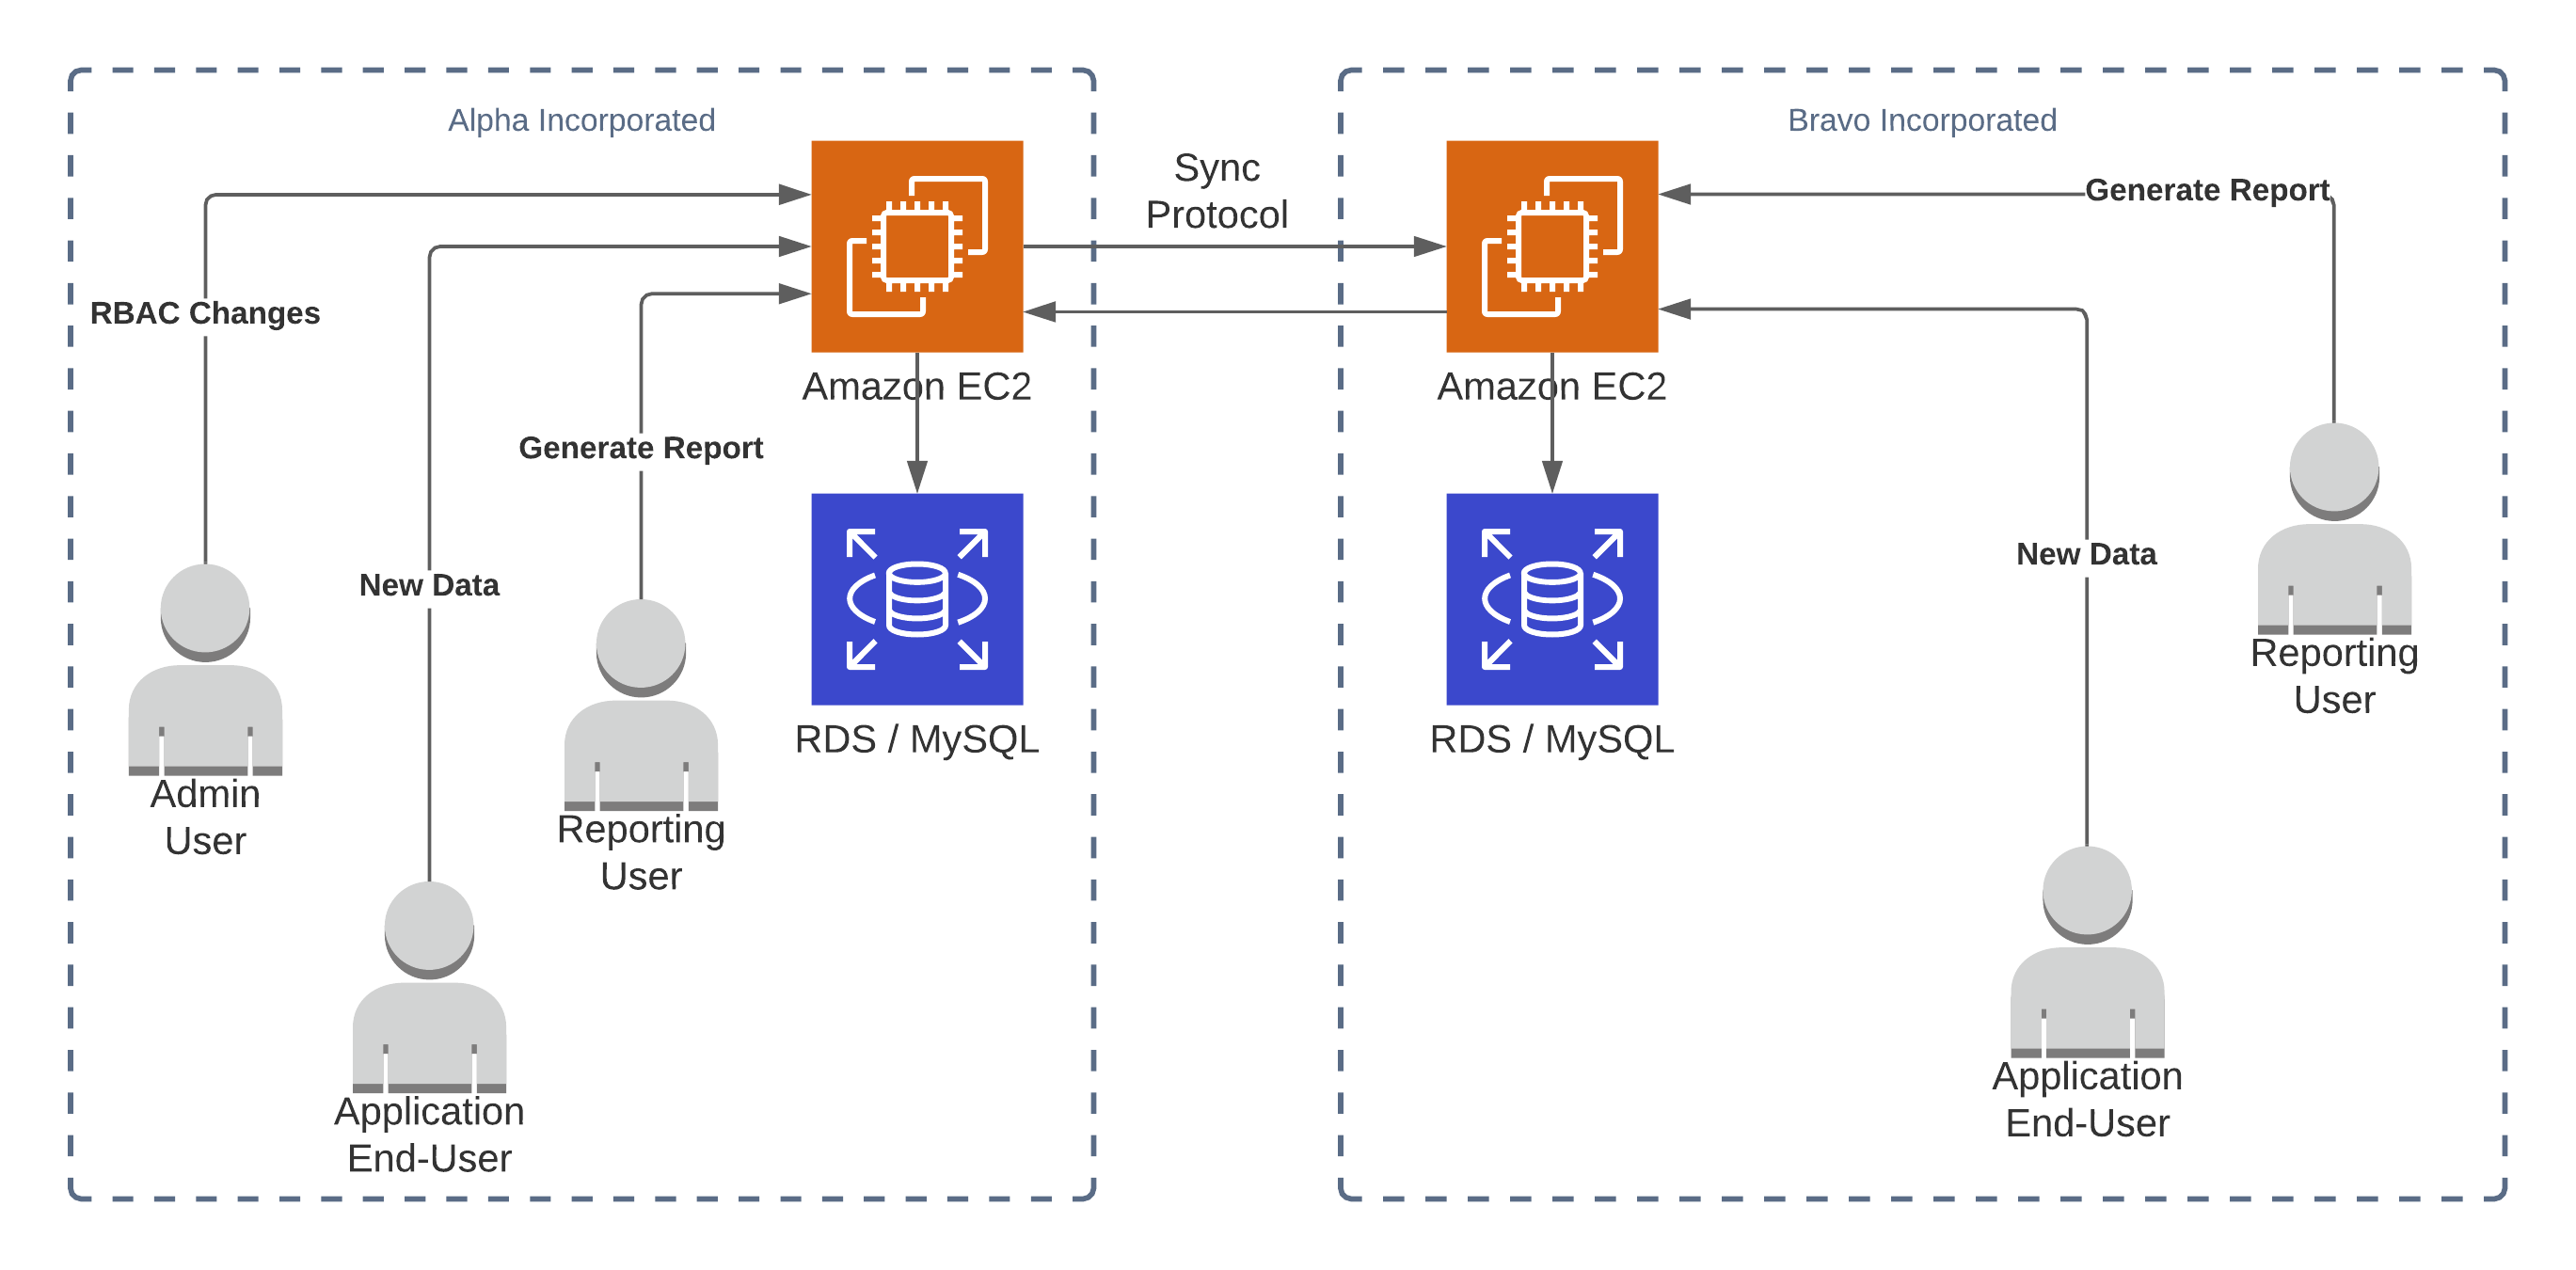 A diagram with two separate SQL databases, accessed by users in different companies but synchronized via a protocol